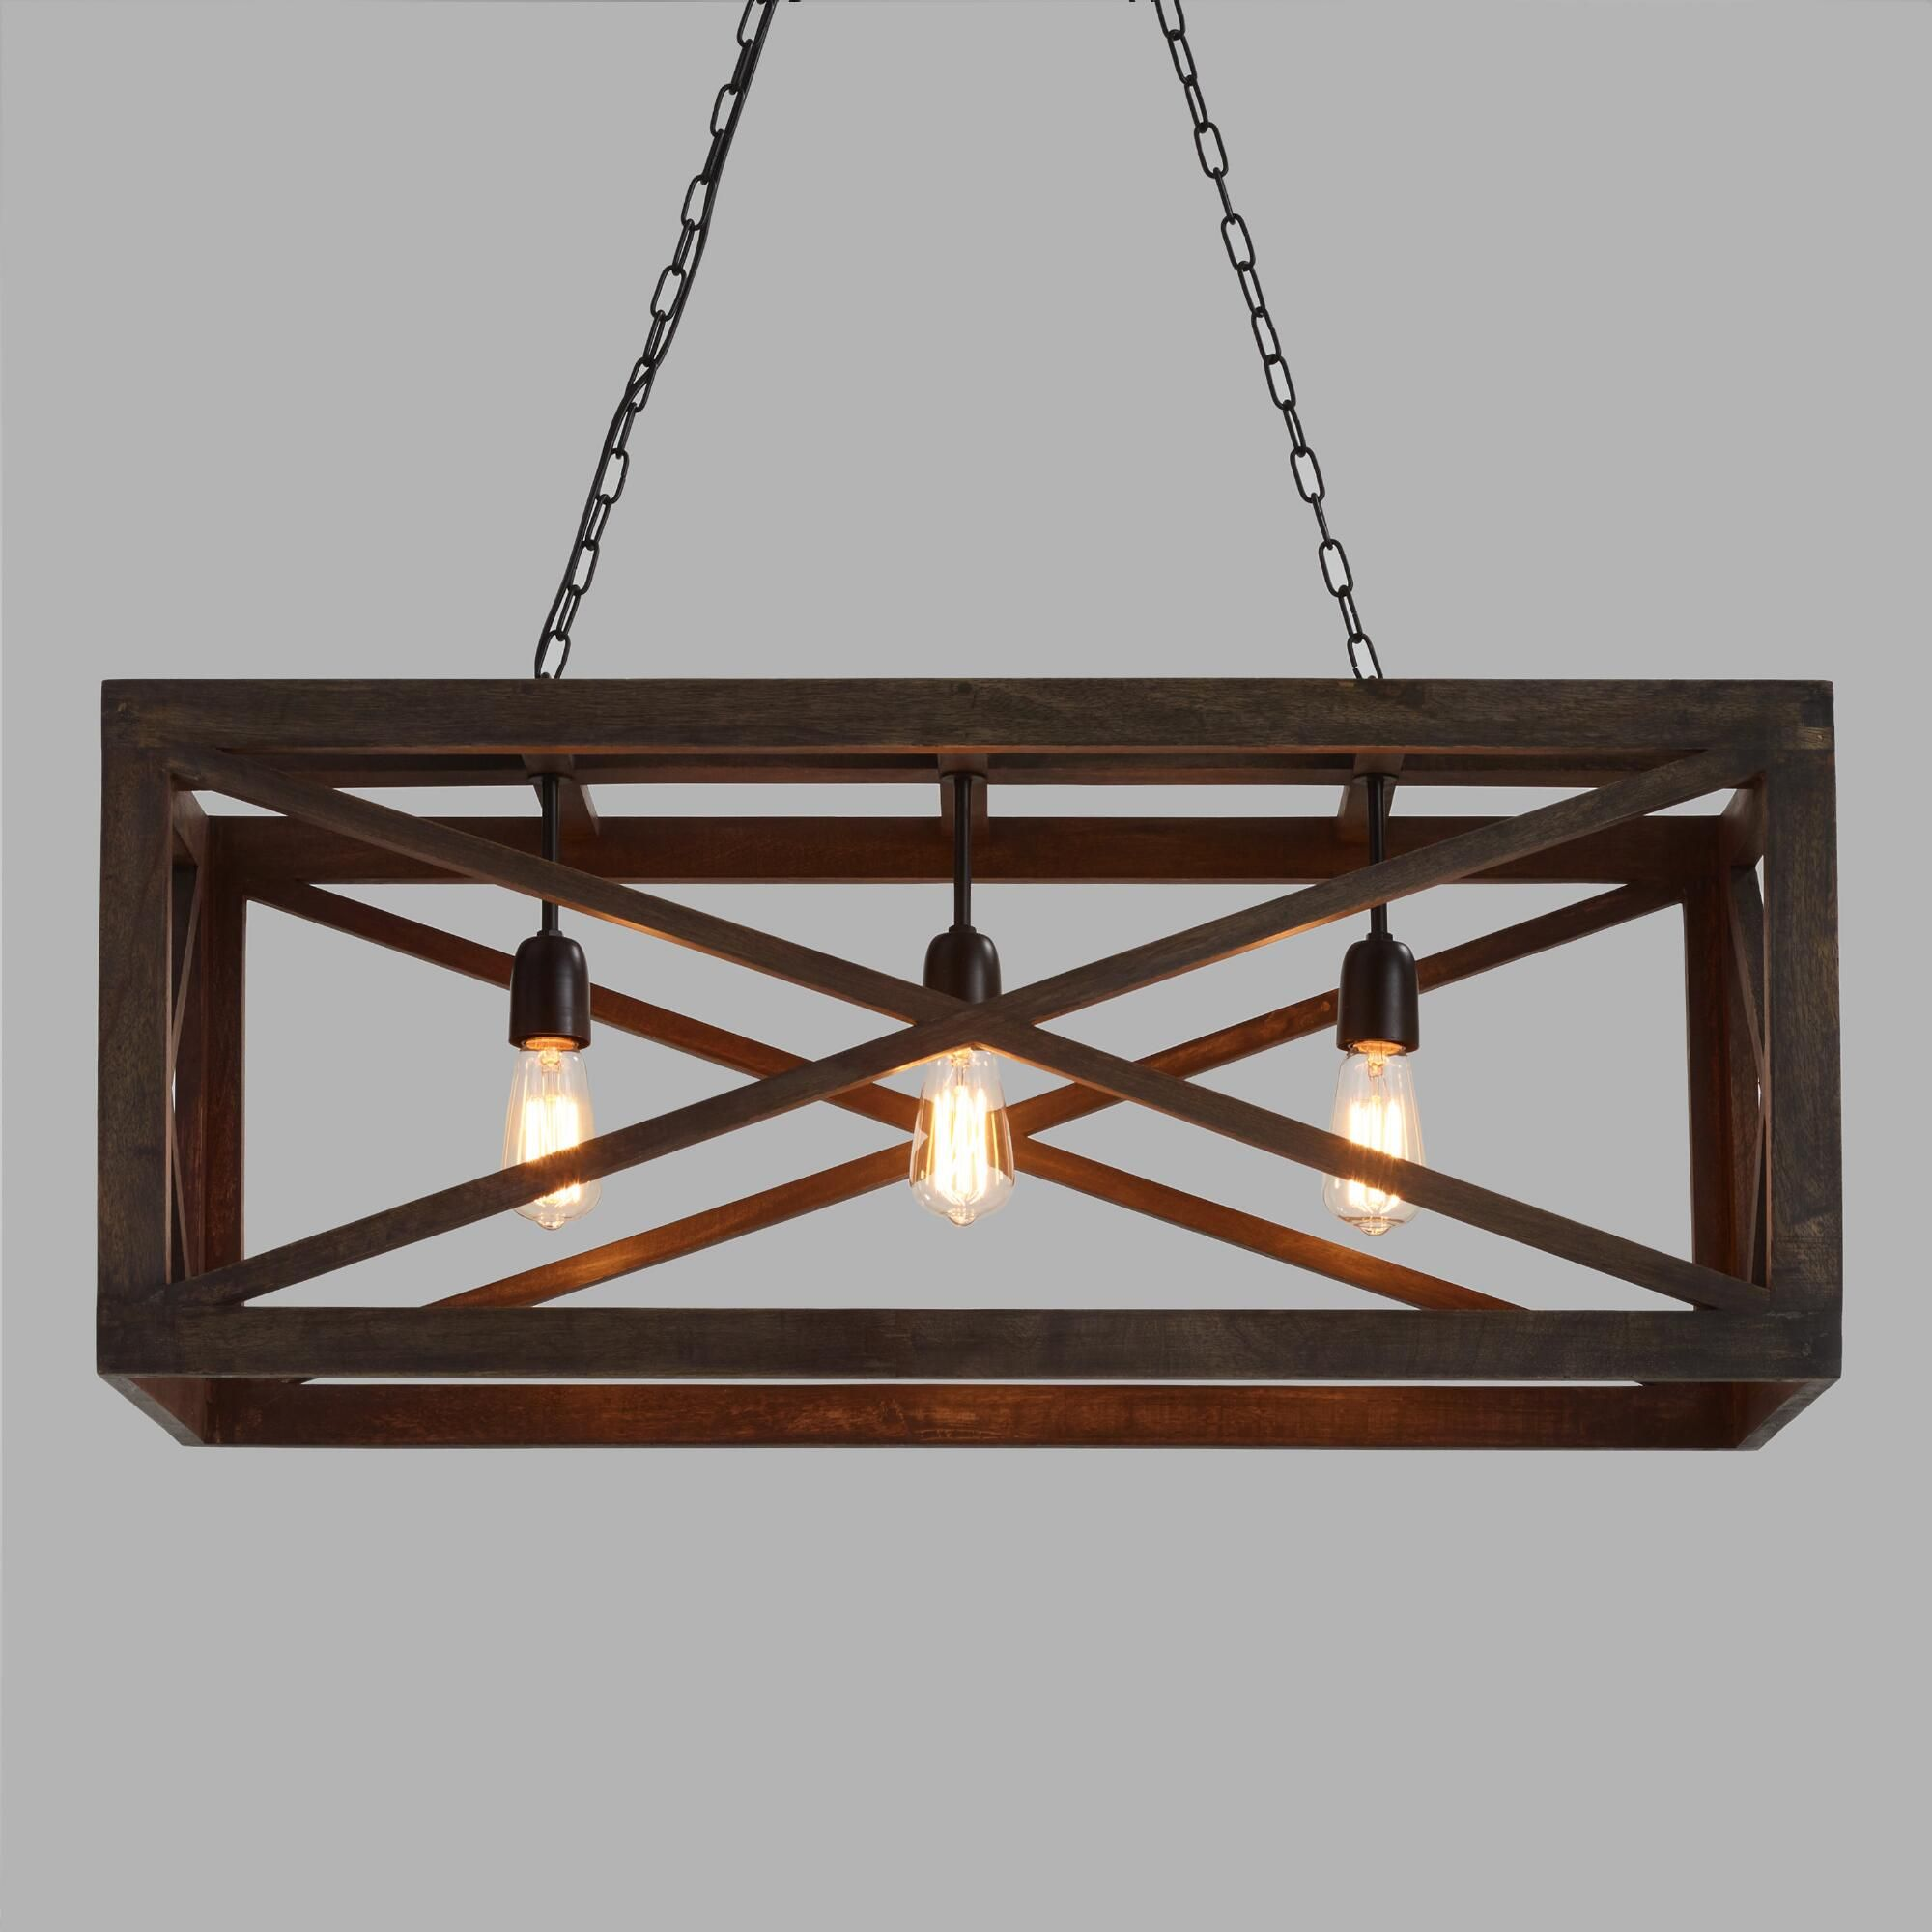 Rectangular Gray Wood 3 Light Valencia Chandelier In 2020 Rustic Kitchen Lighting Farmhouse Light Fixtures Dining Room Light Fixtures